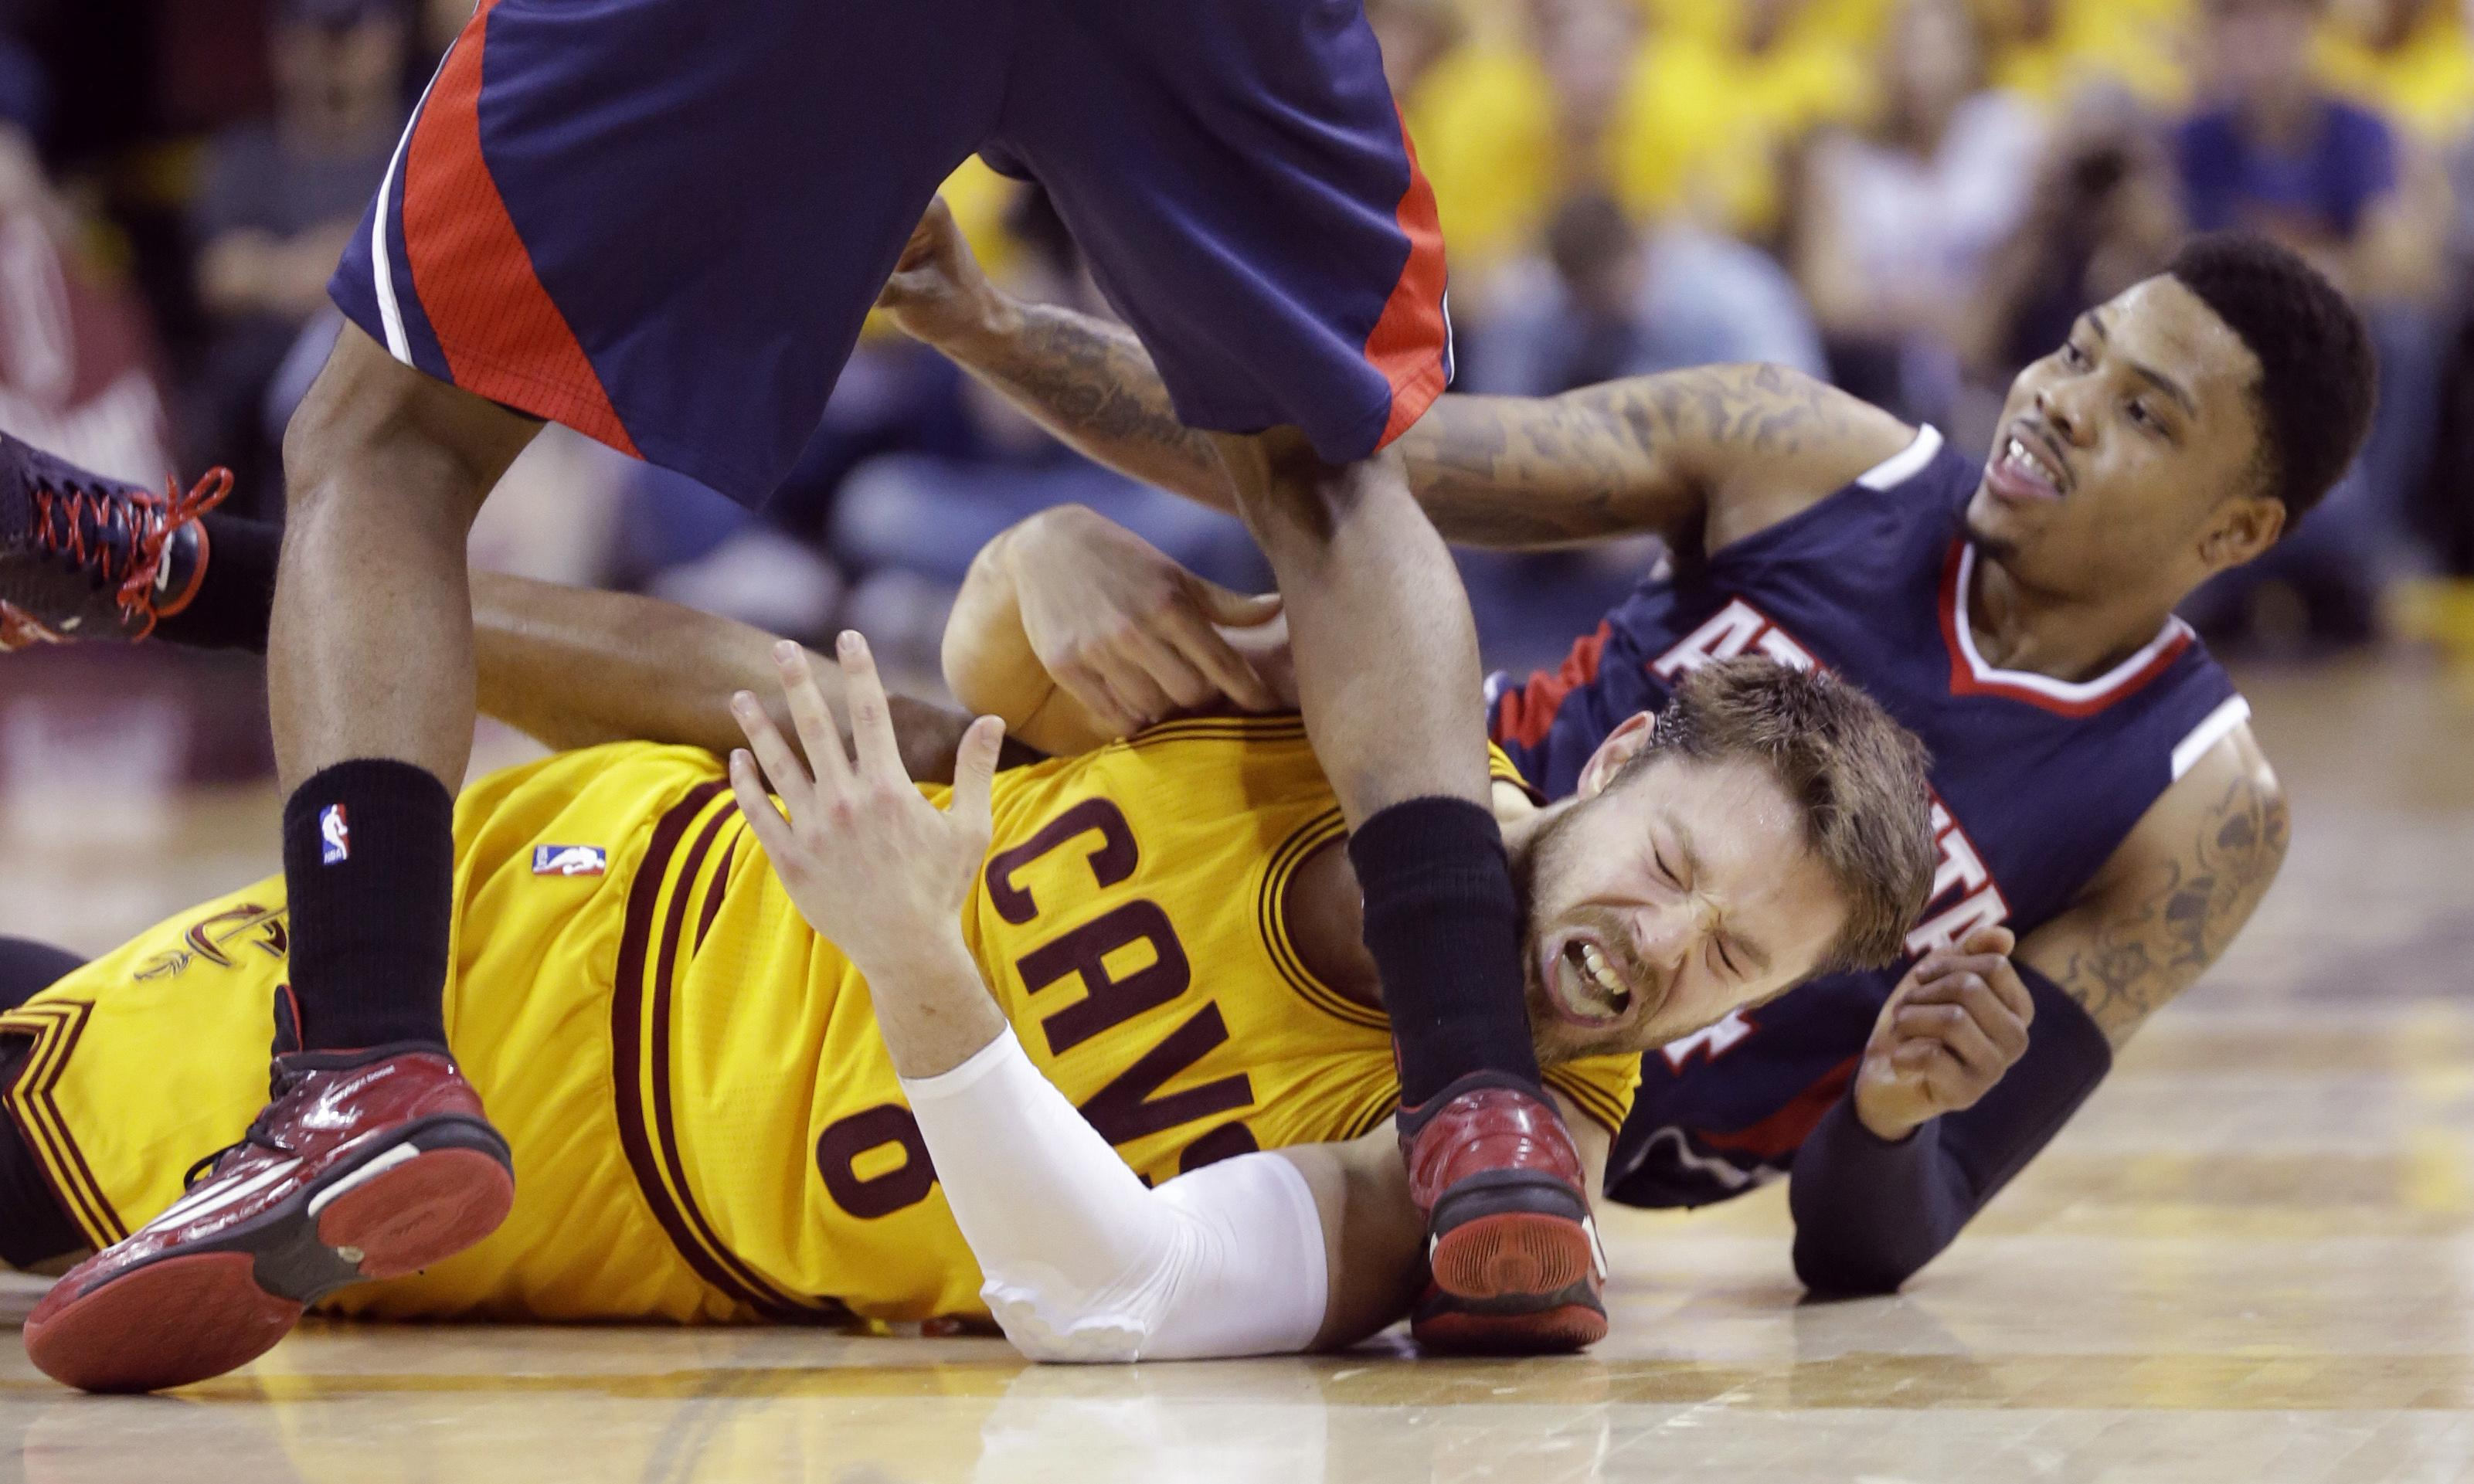 US media brands Cleveland Cavaliers' Matthew Dellavedova a 'dirty player'